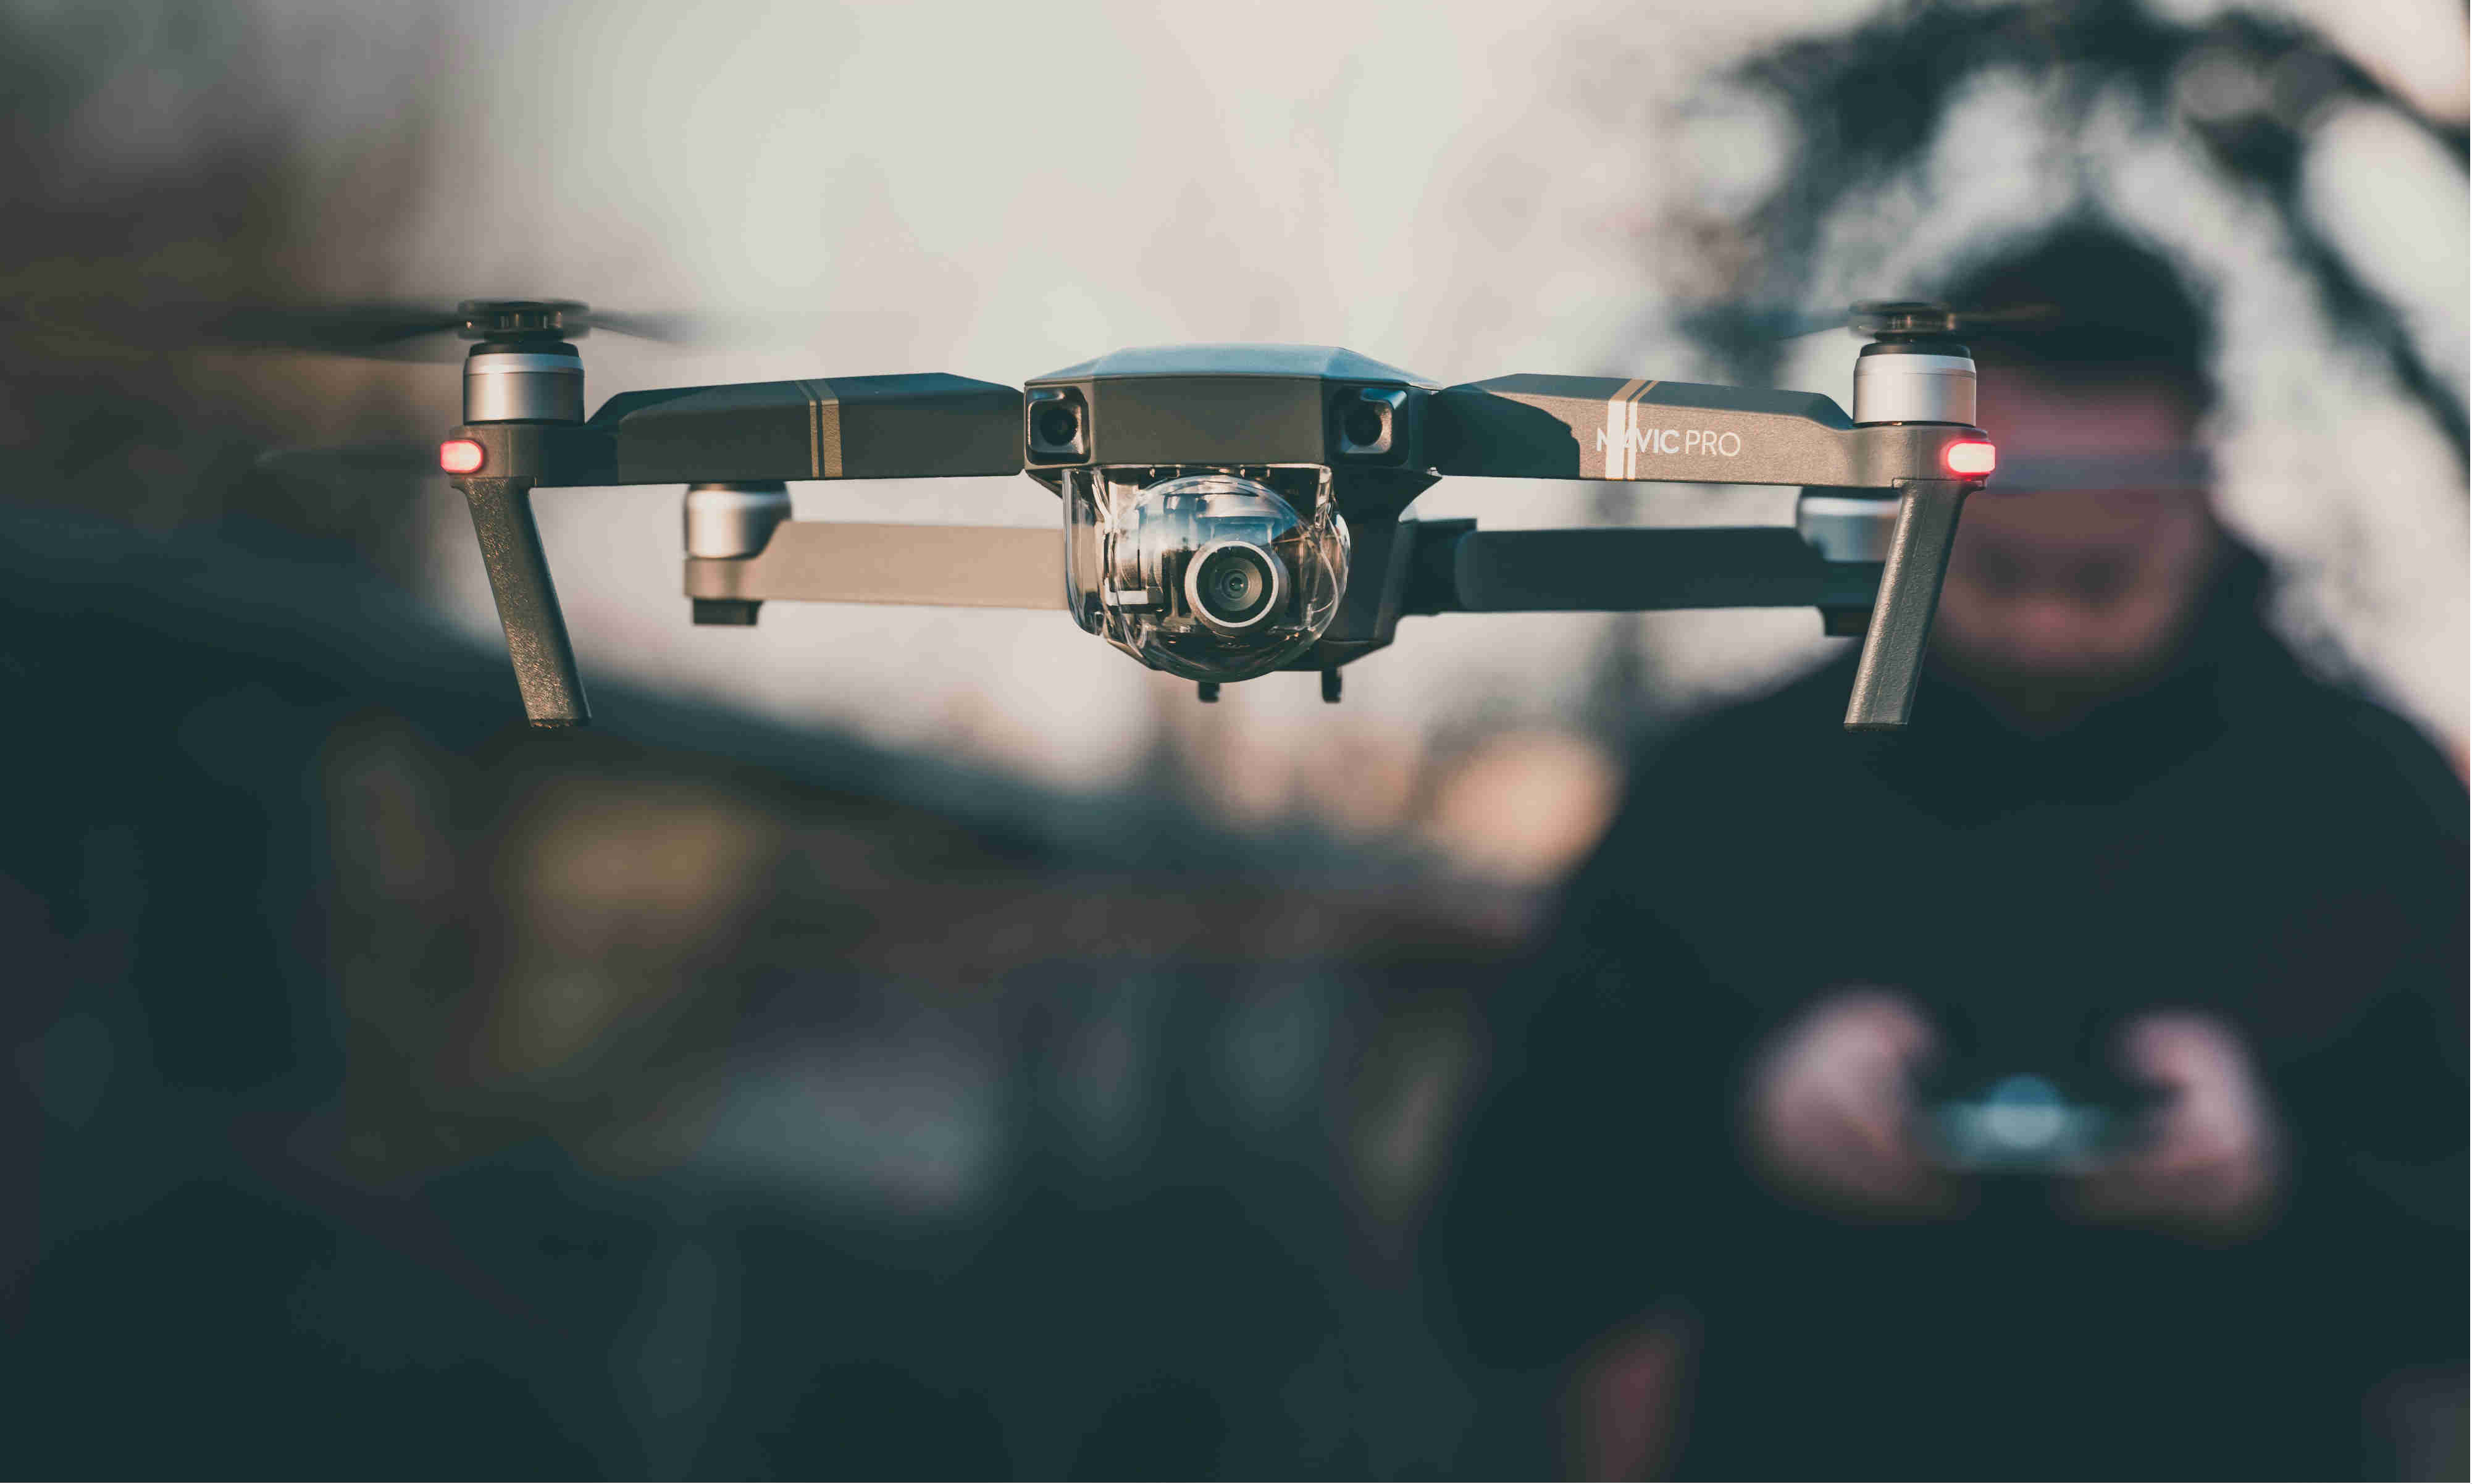 Tavcom responds to airport drone chaos with new detection courses